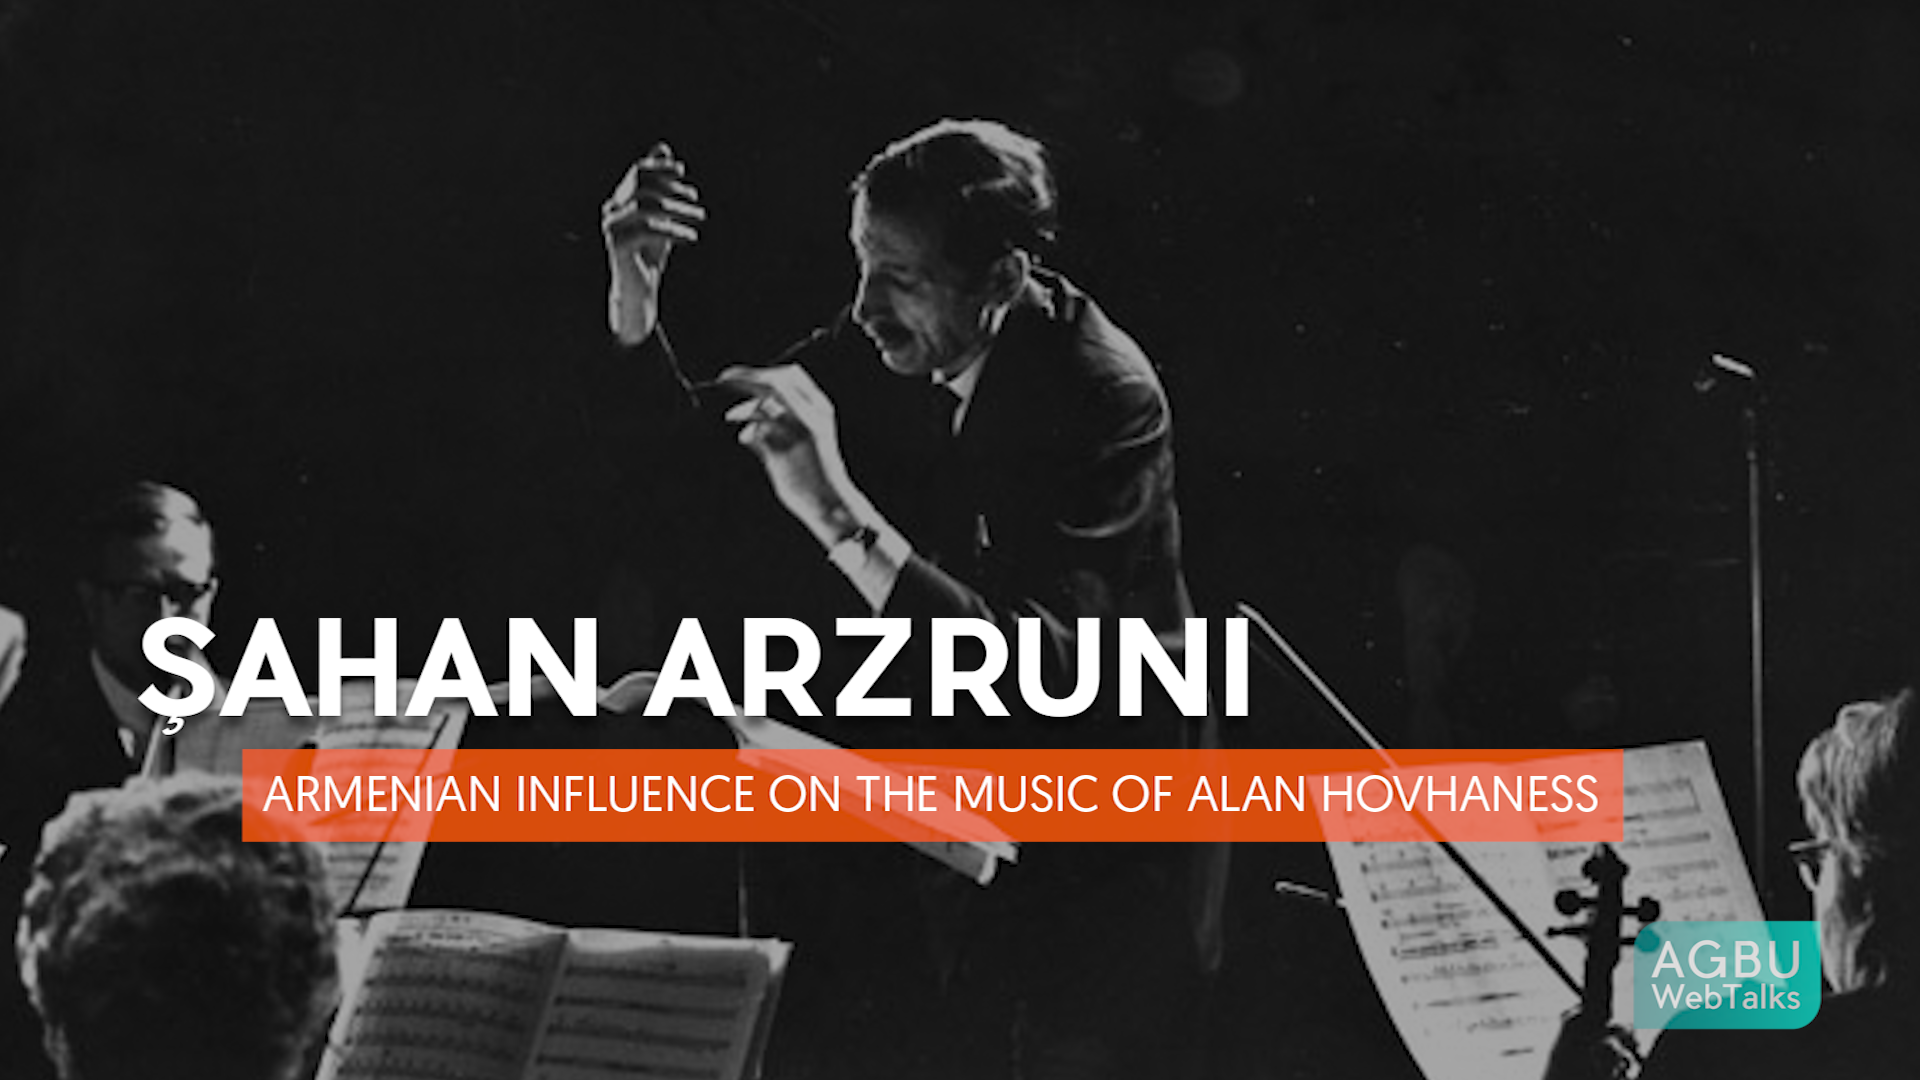 Armenian Influence on the Music of Alan Hovhaness